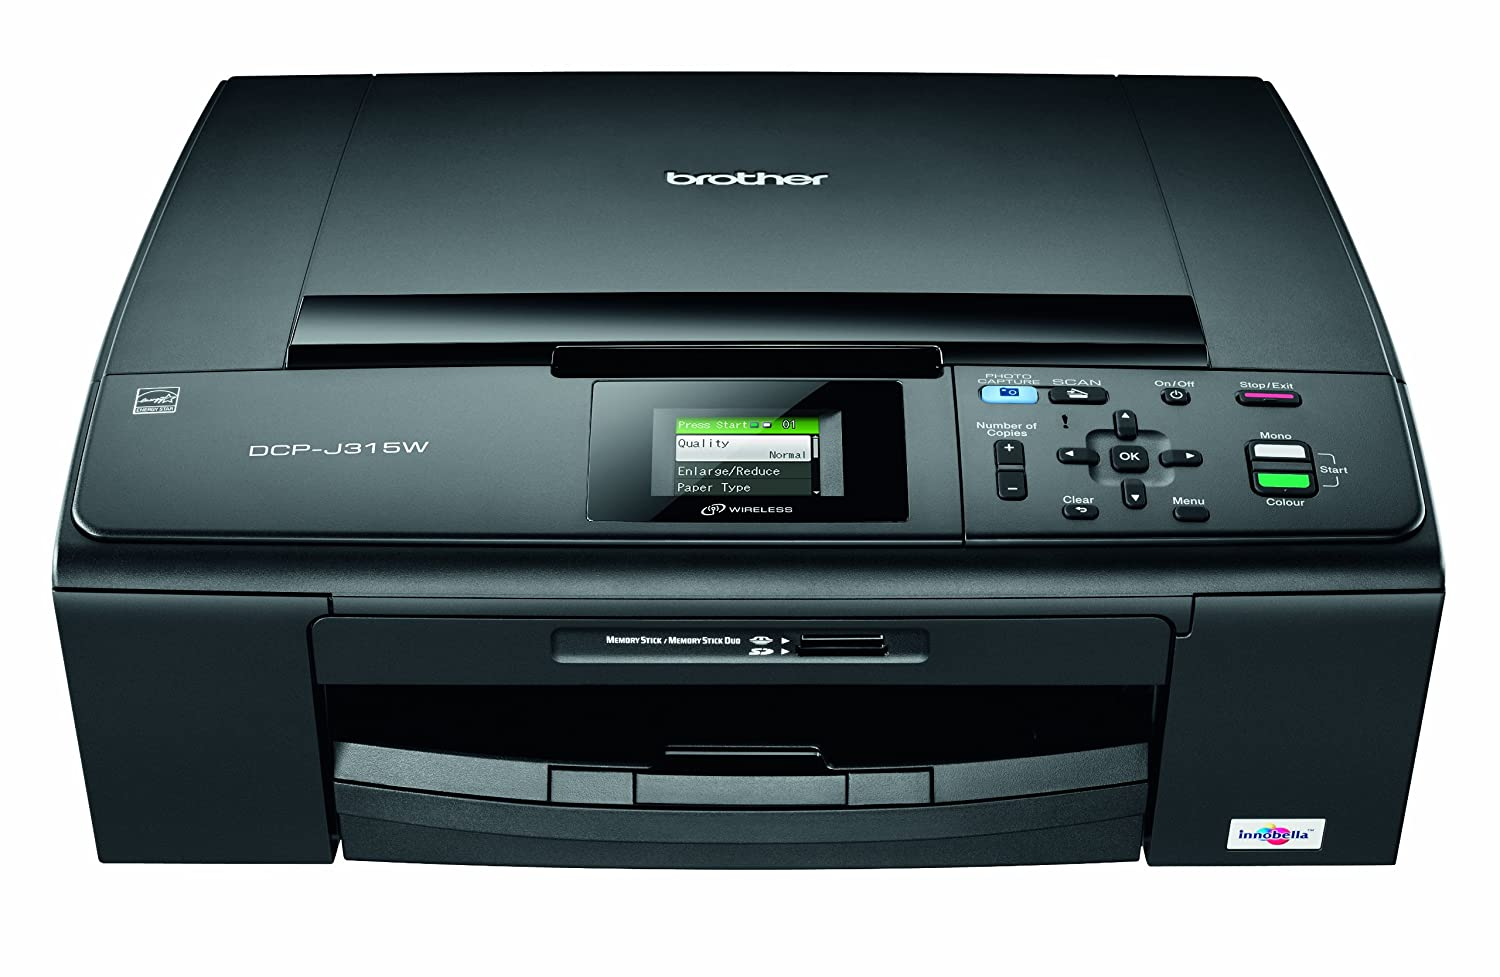 BROTHER DCP-J315W SCANNER DRIVER DOWNLOAD (2019)